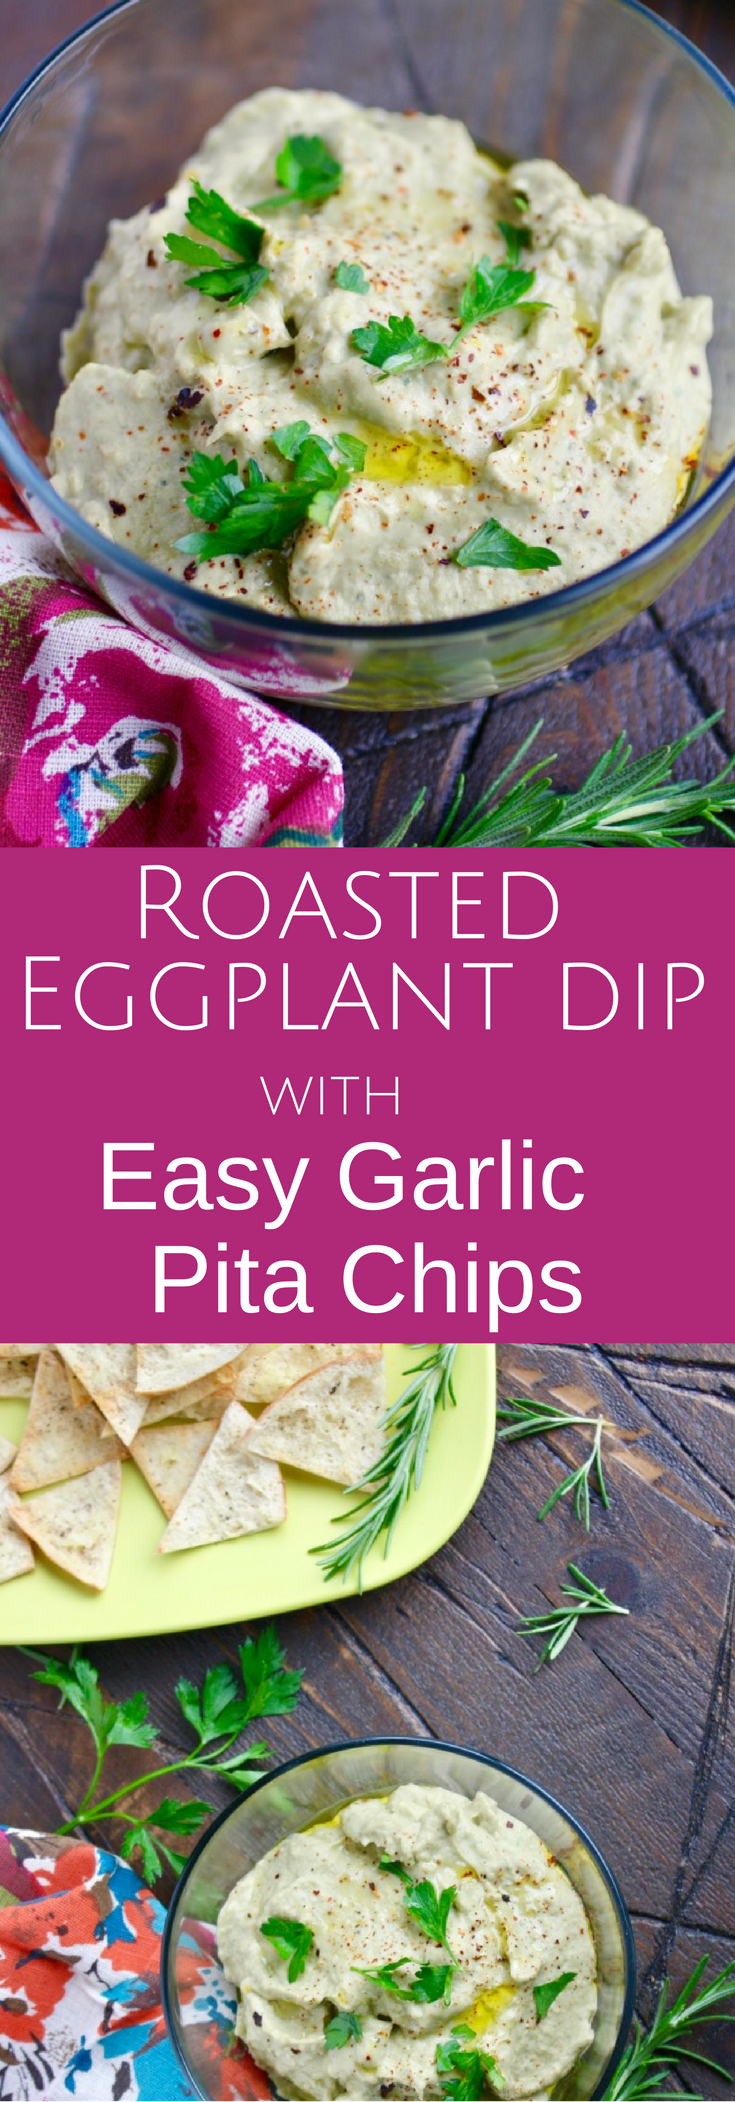 Roasted Eggplant Dip With Spiced Pita Crisps Recipe — Dishmaps